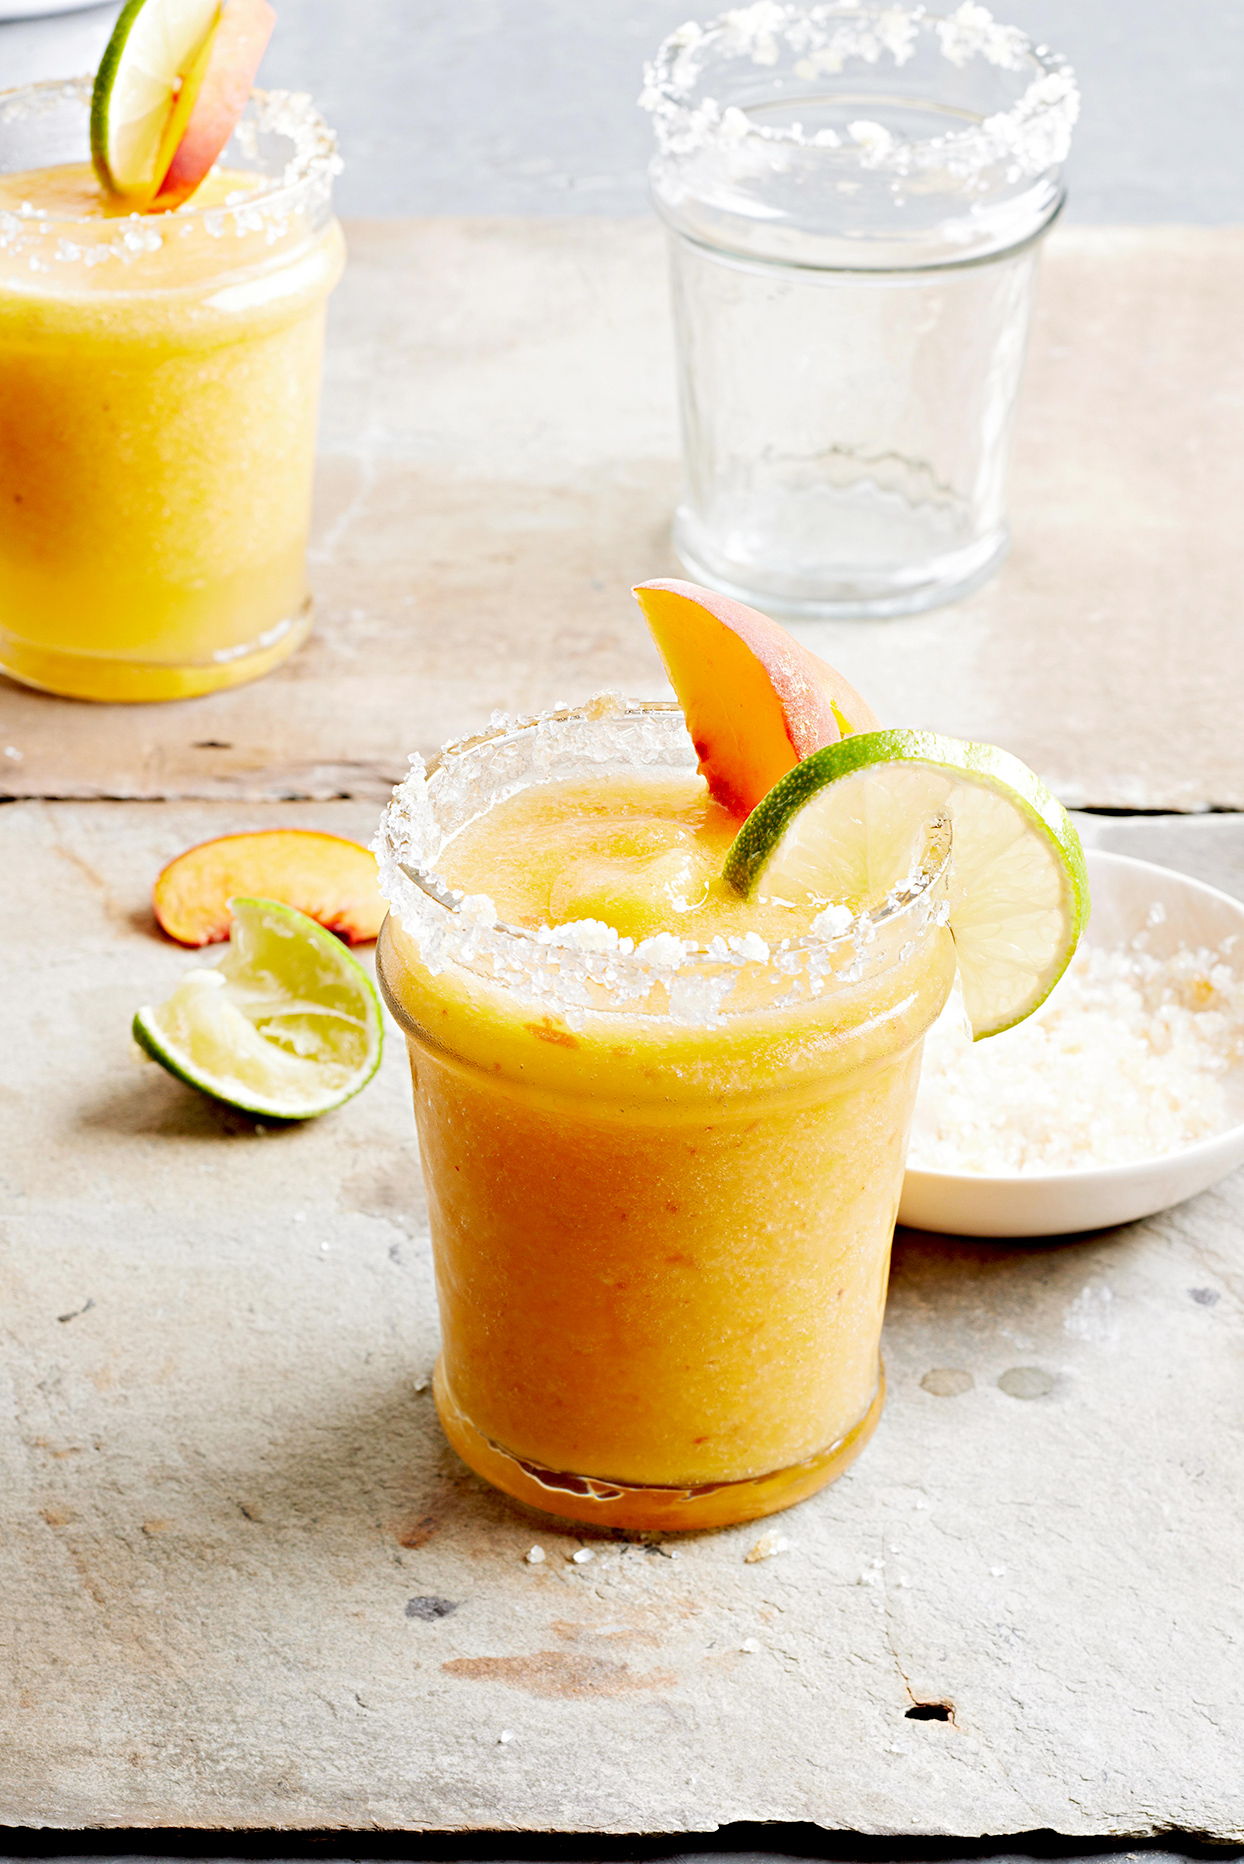 Ginger-Peach Margaritas